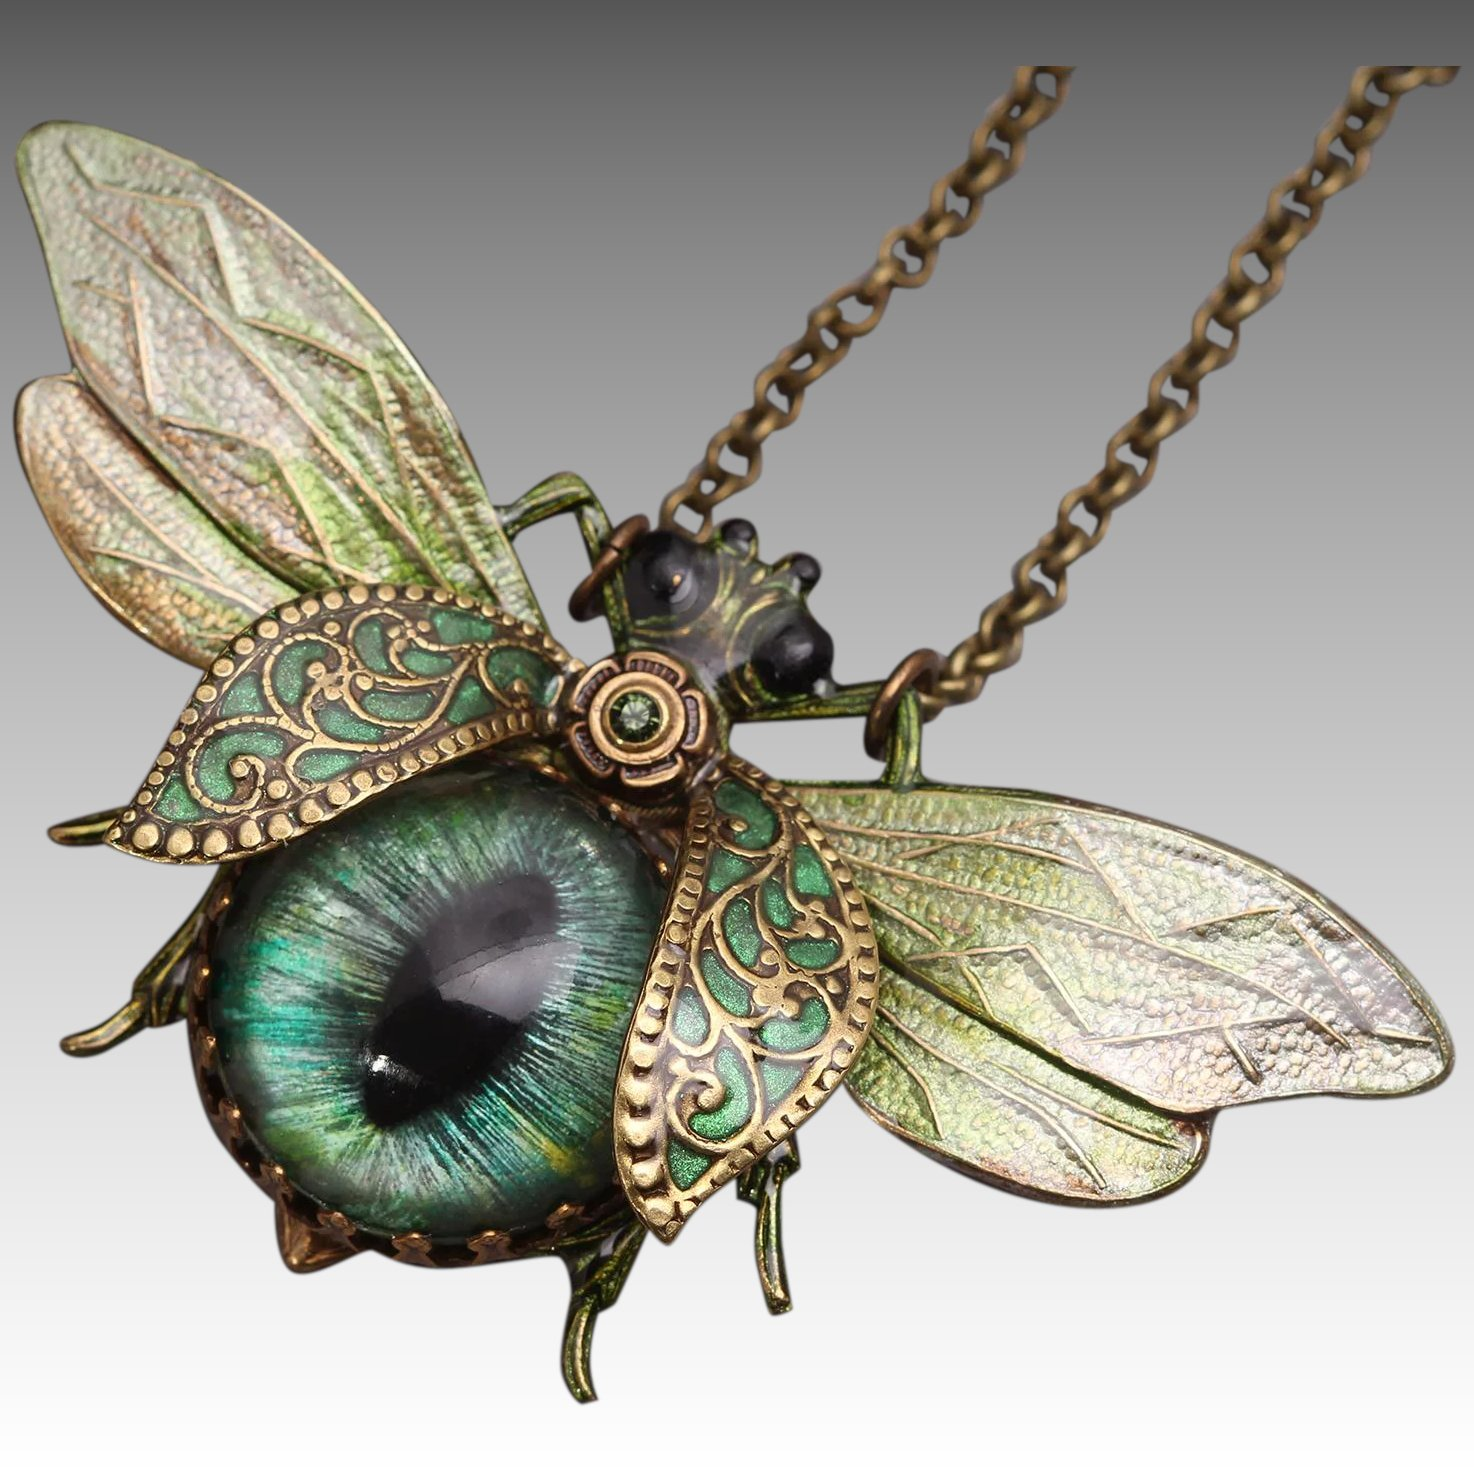 Bee necklace bug necklace insect jewelry save the bees click to expand aloadofball Choice Image